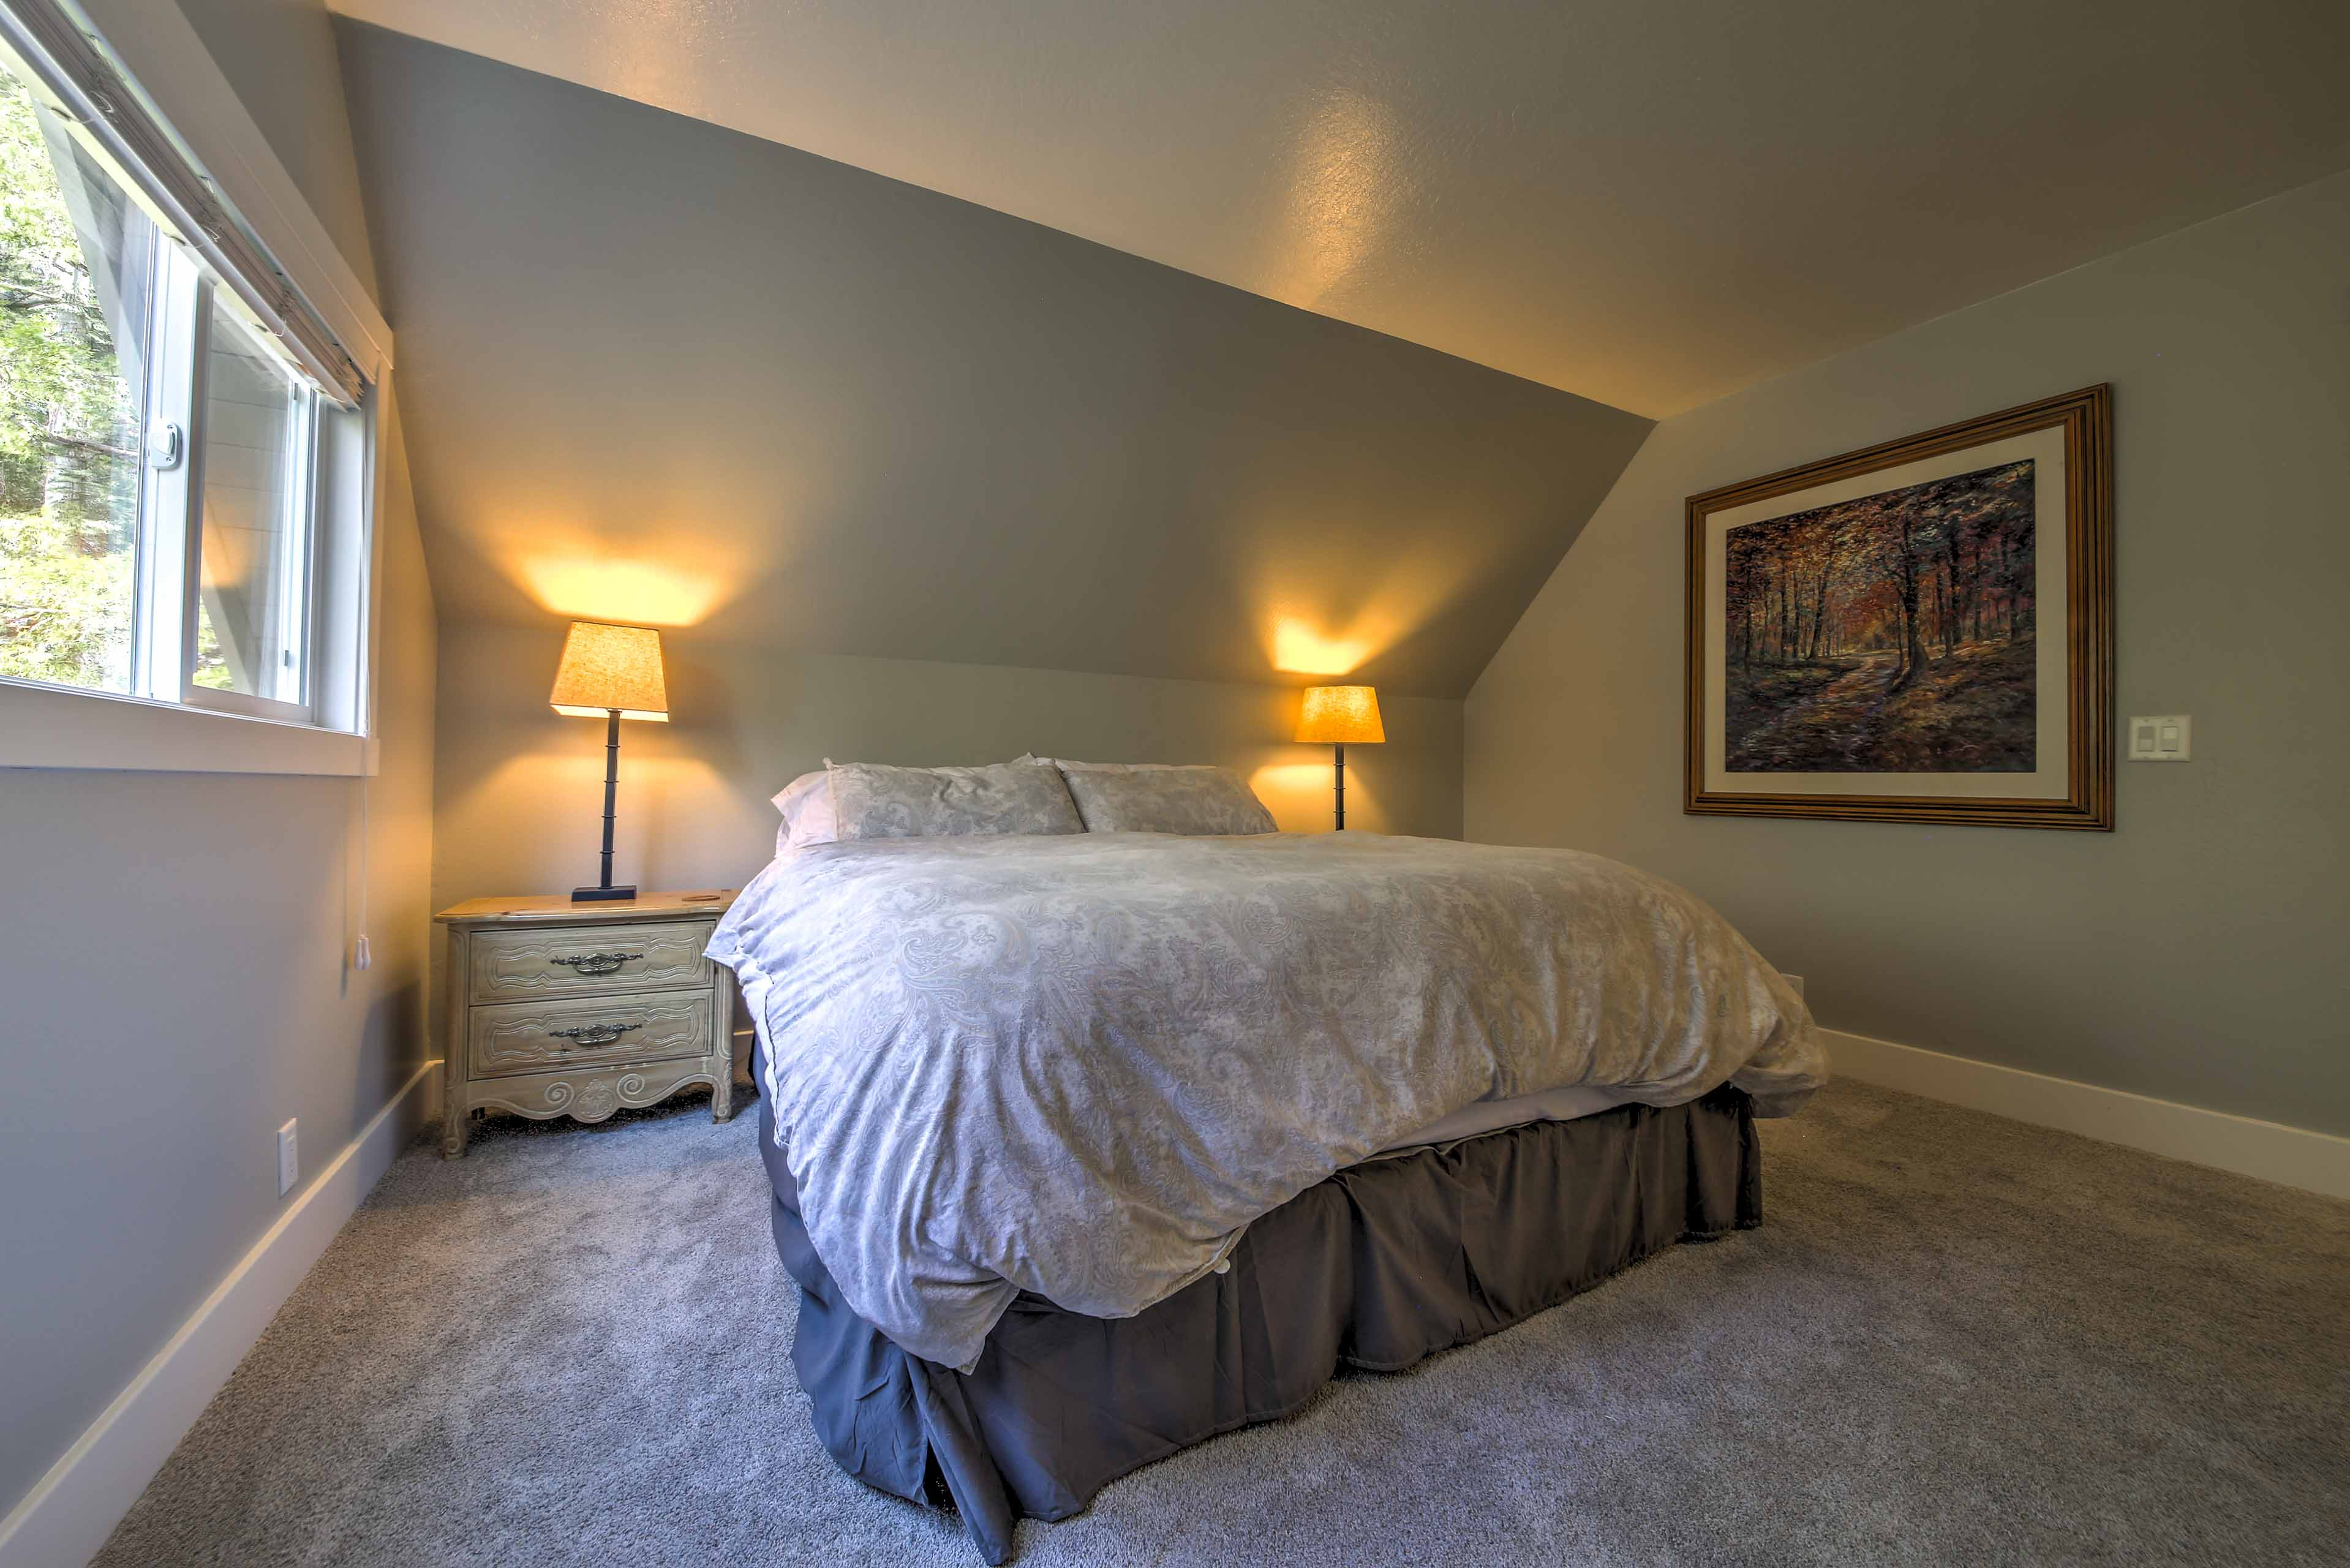 The master bedroom boasts a spacious king-sized bed.